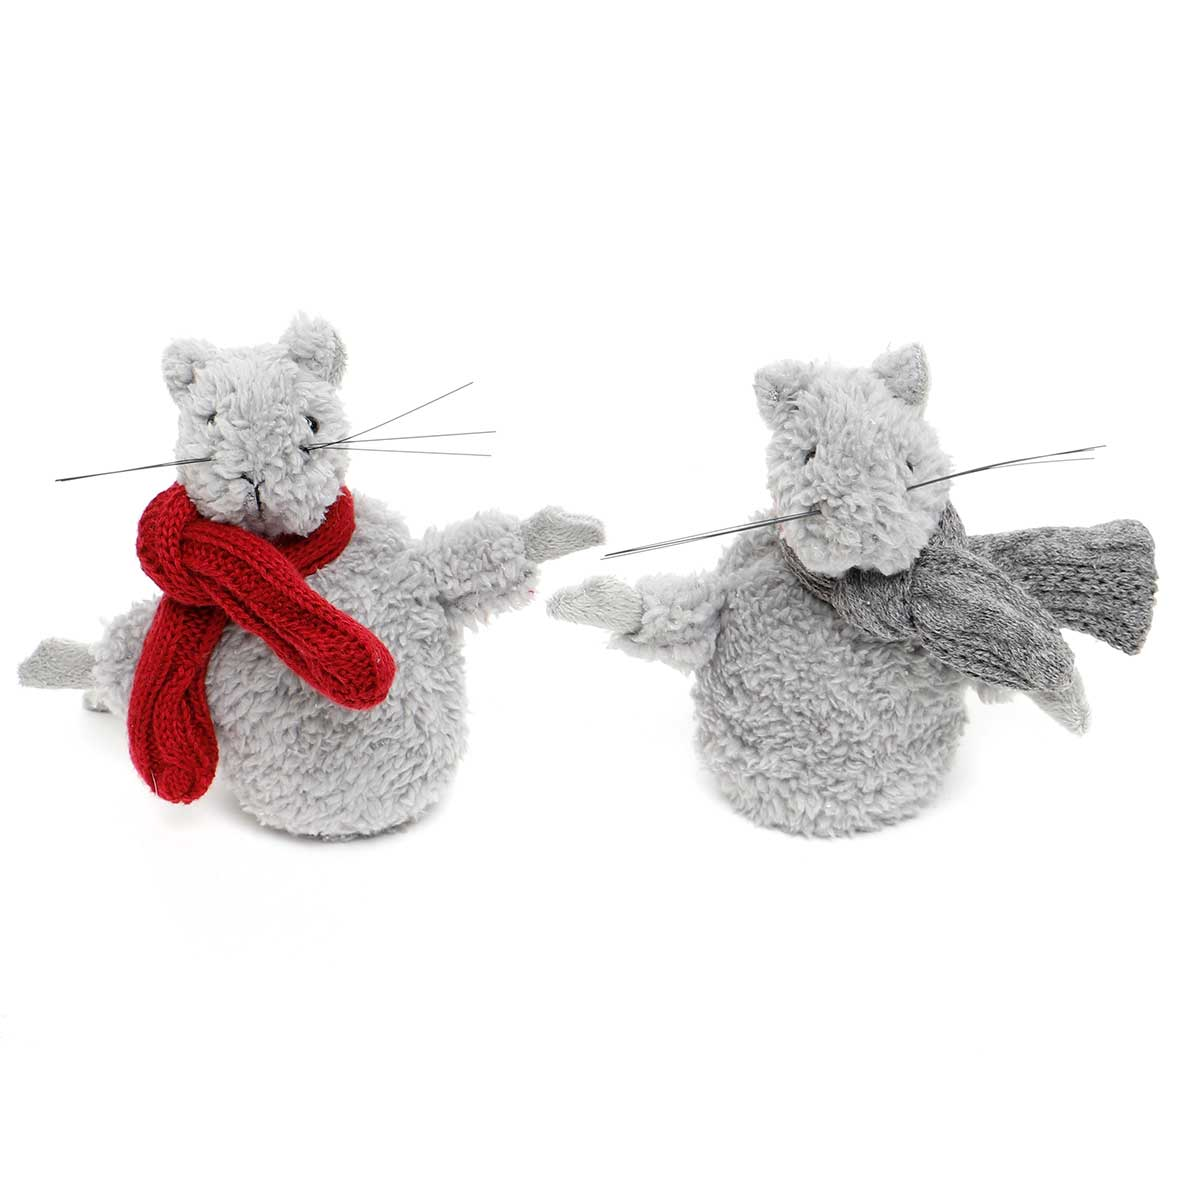 CHRISTMAS MOUSE WITH SCARF 2 ASSORTED